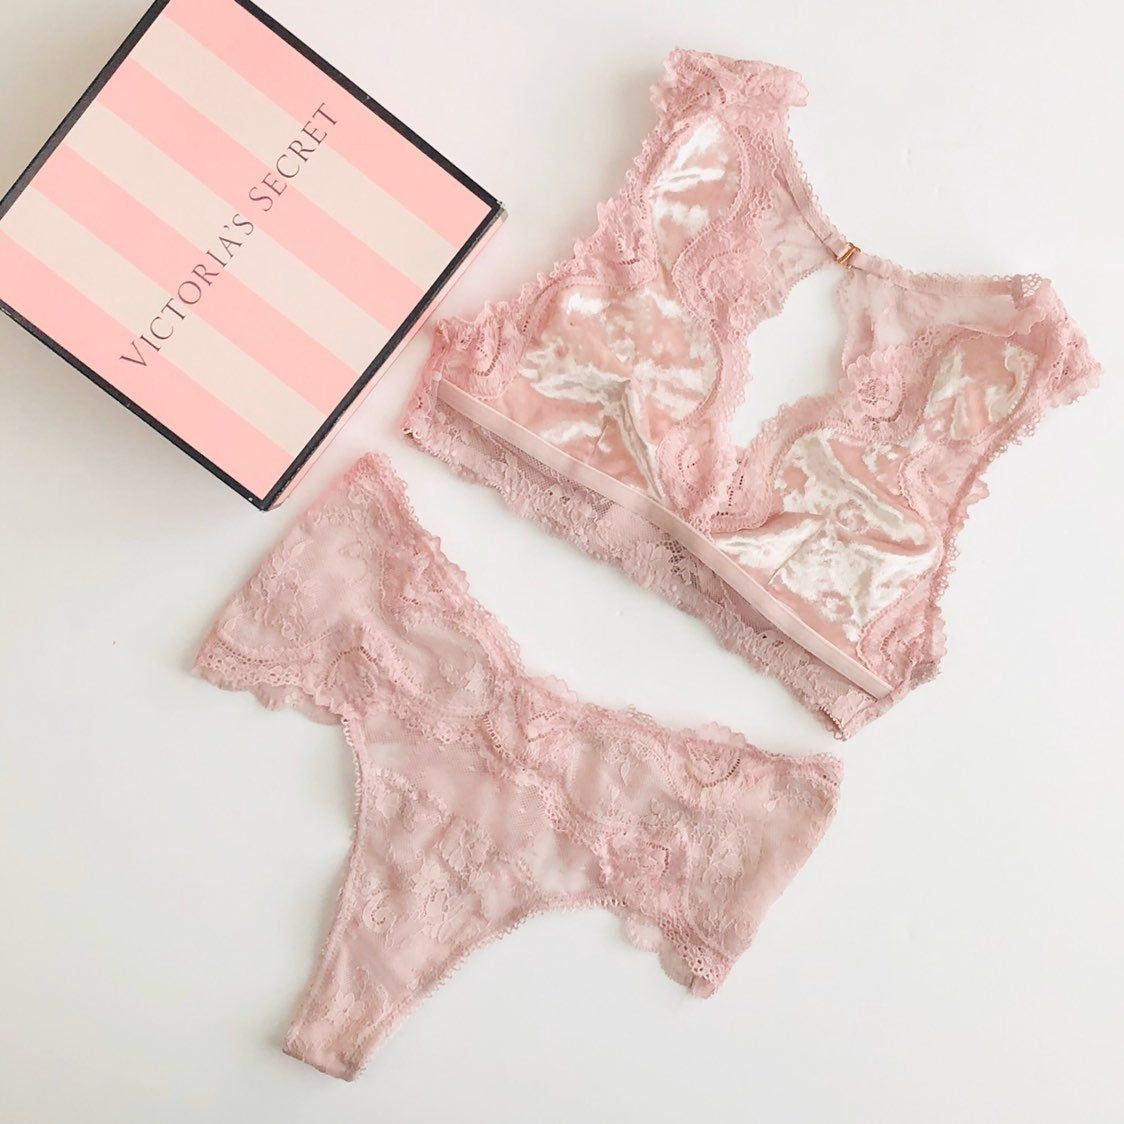 Victoria Secret Bralette X-Small Free Shipping Buy More Save More!